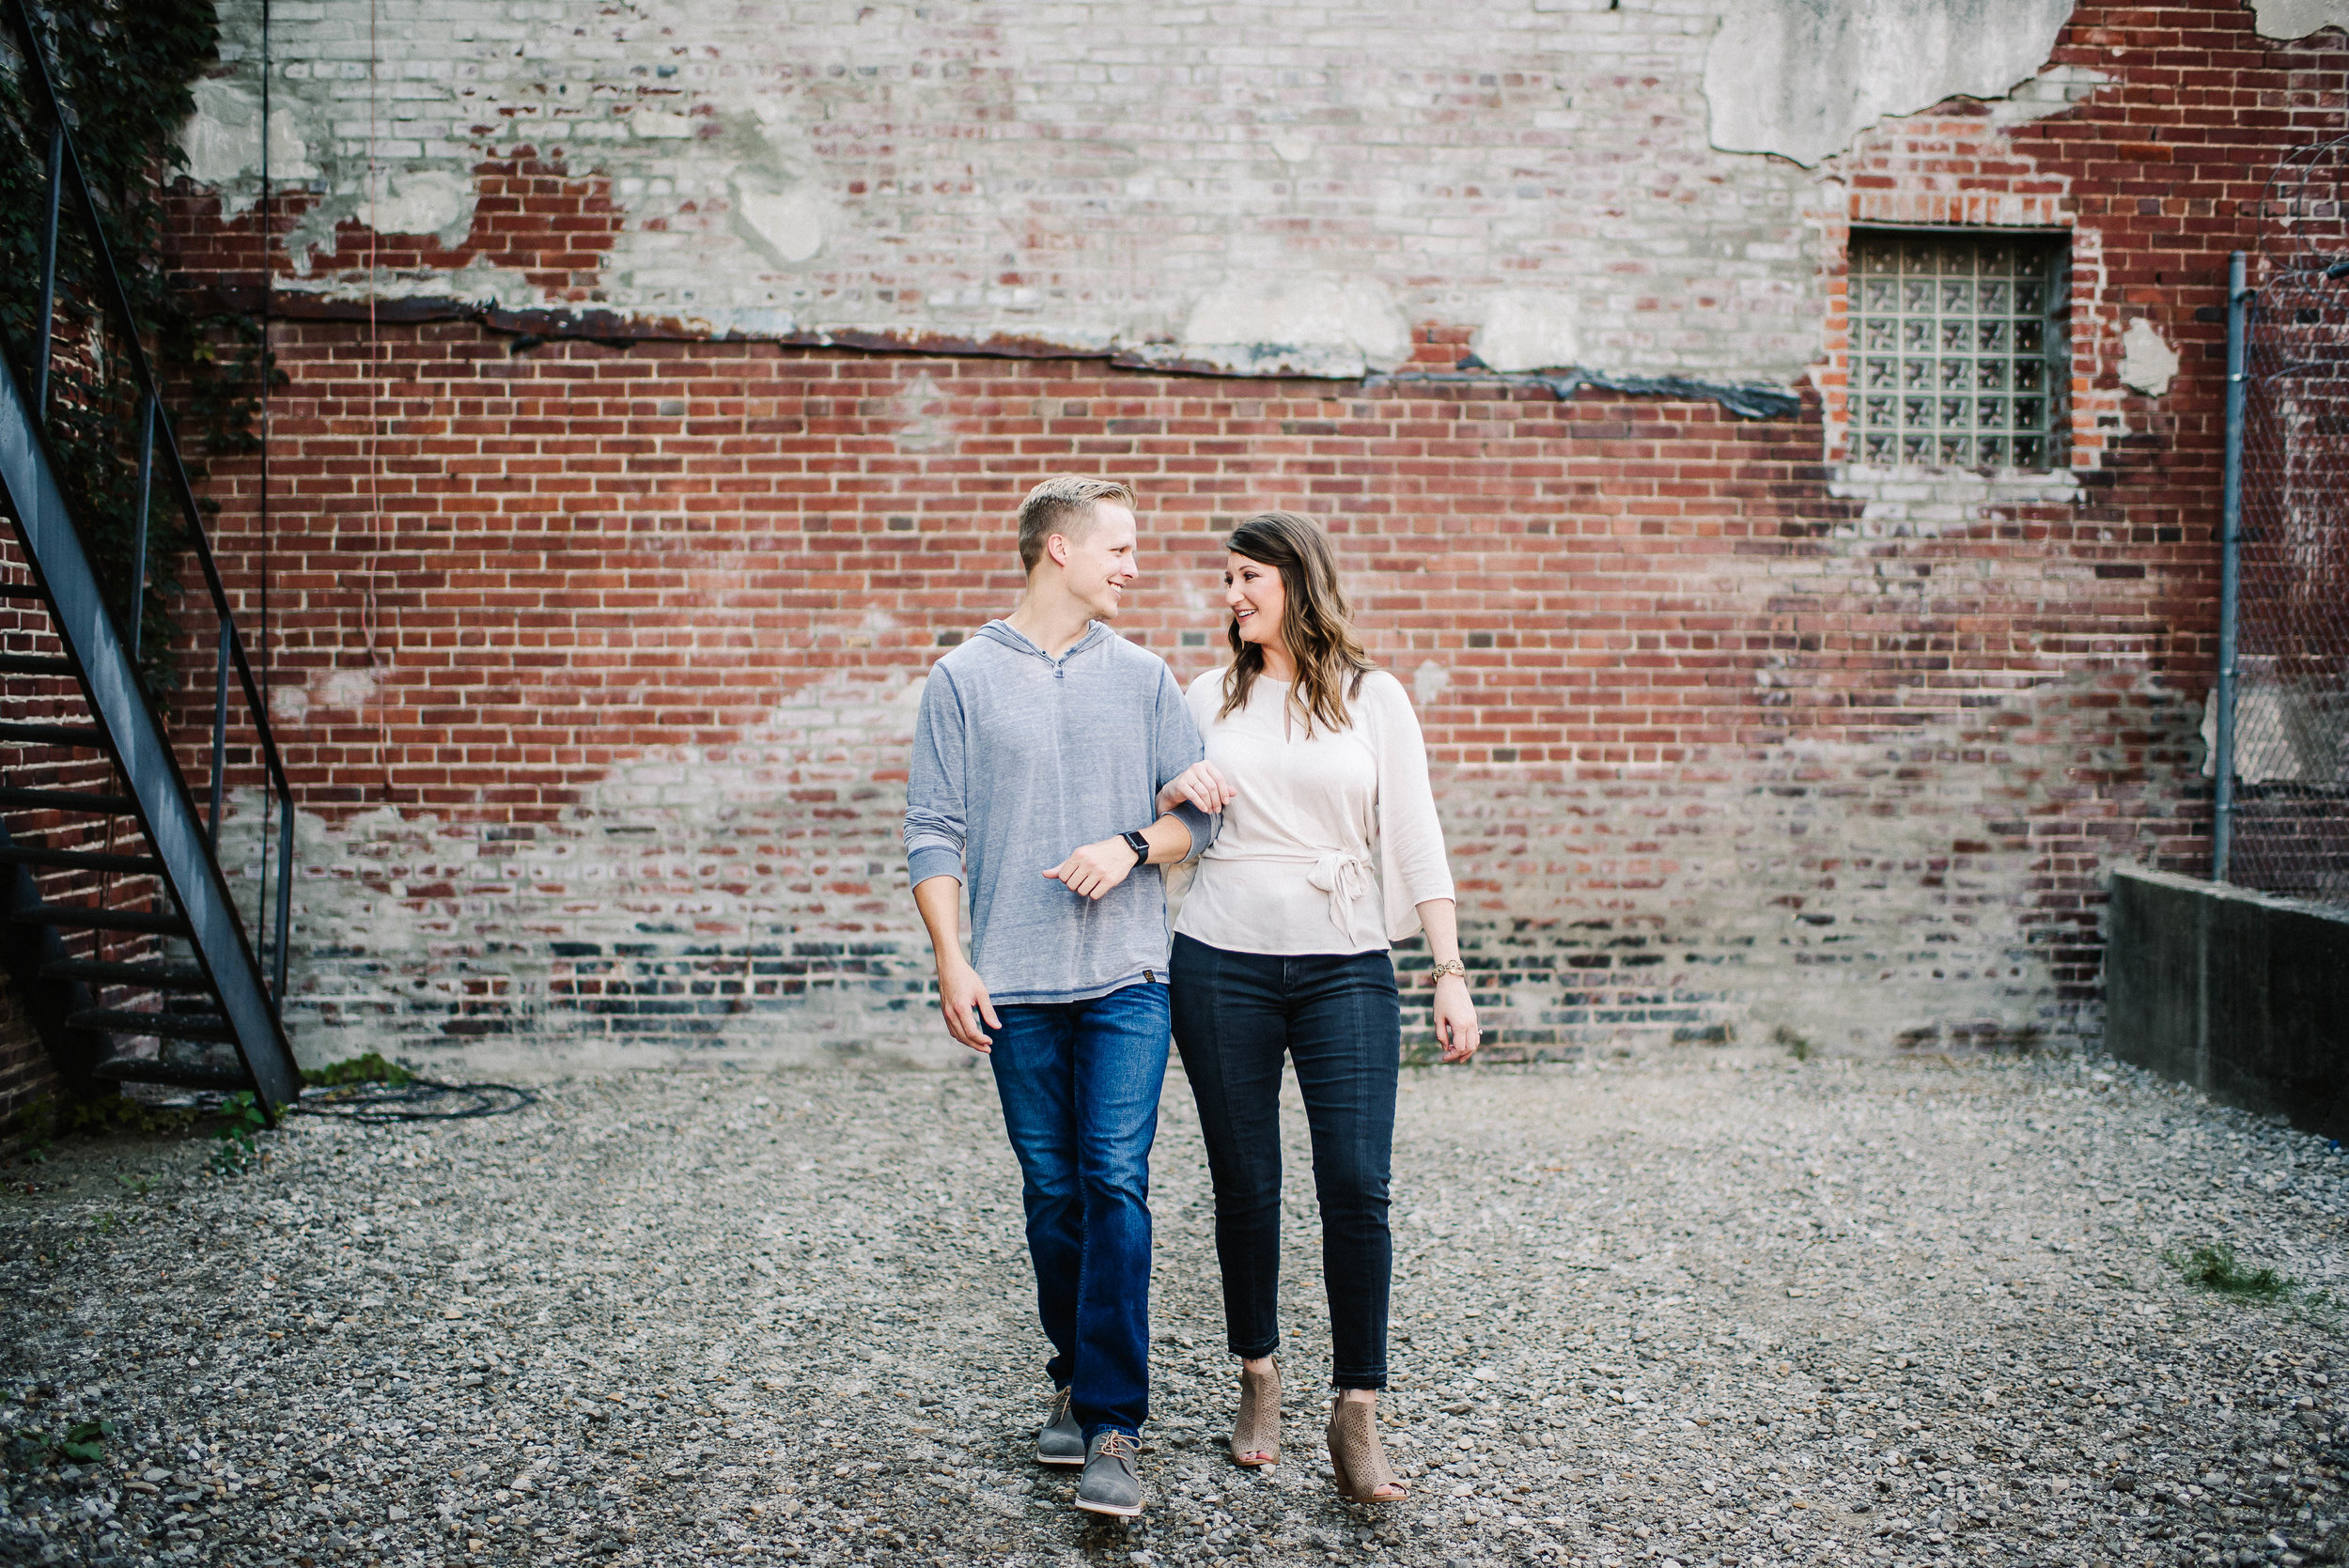 Downtown Memphis Engagement_Megan & Adam_Ashley Benham Photography-18.jpg